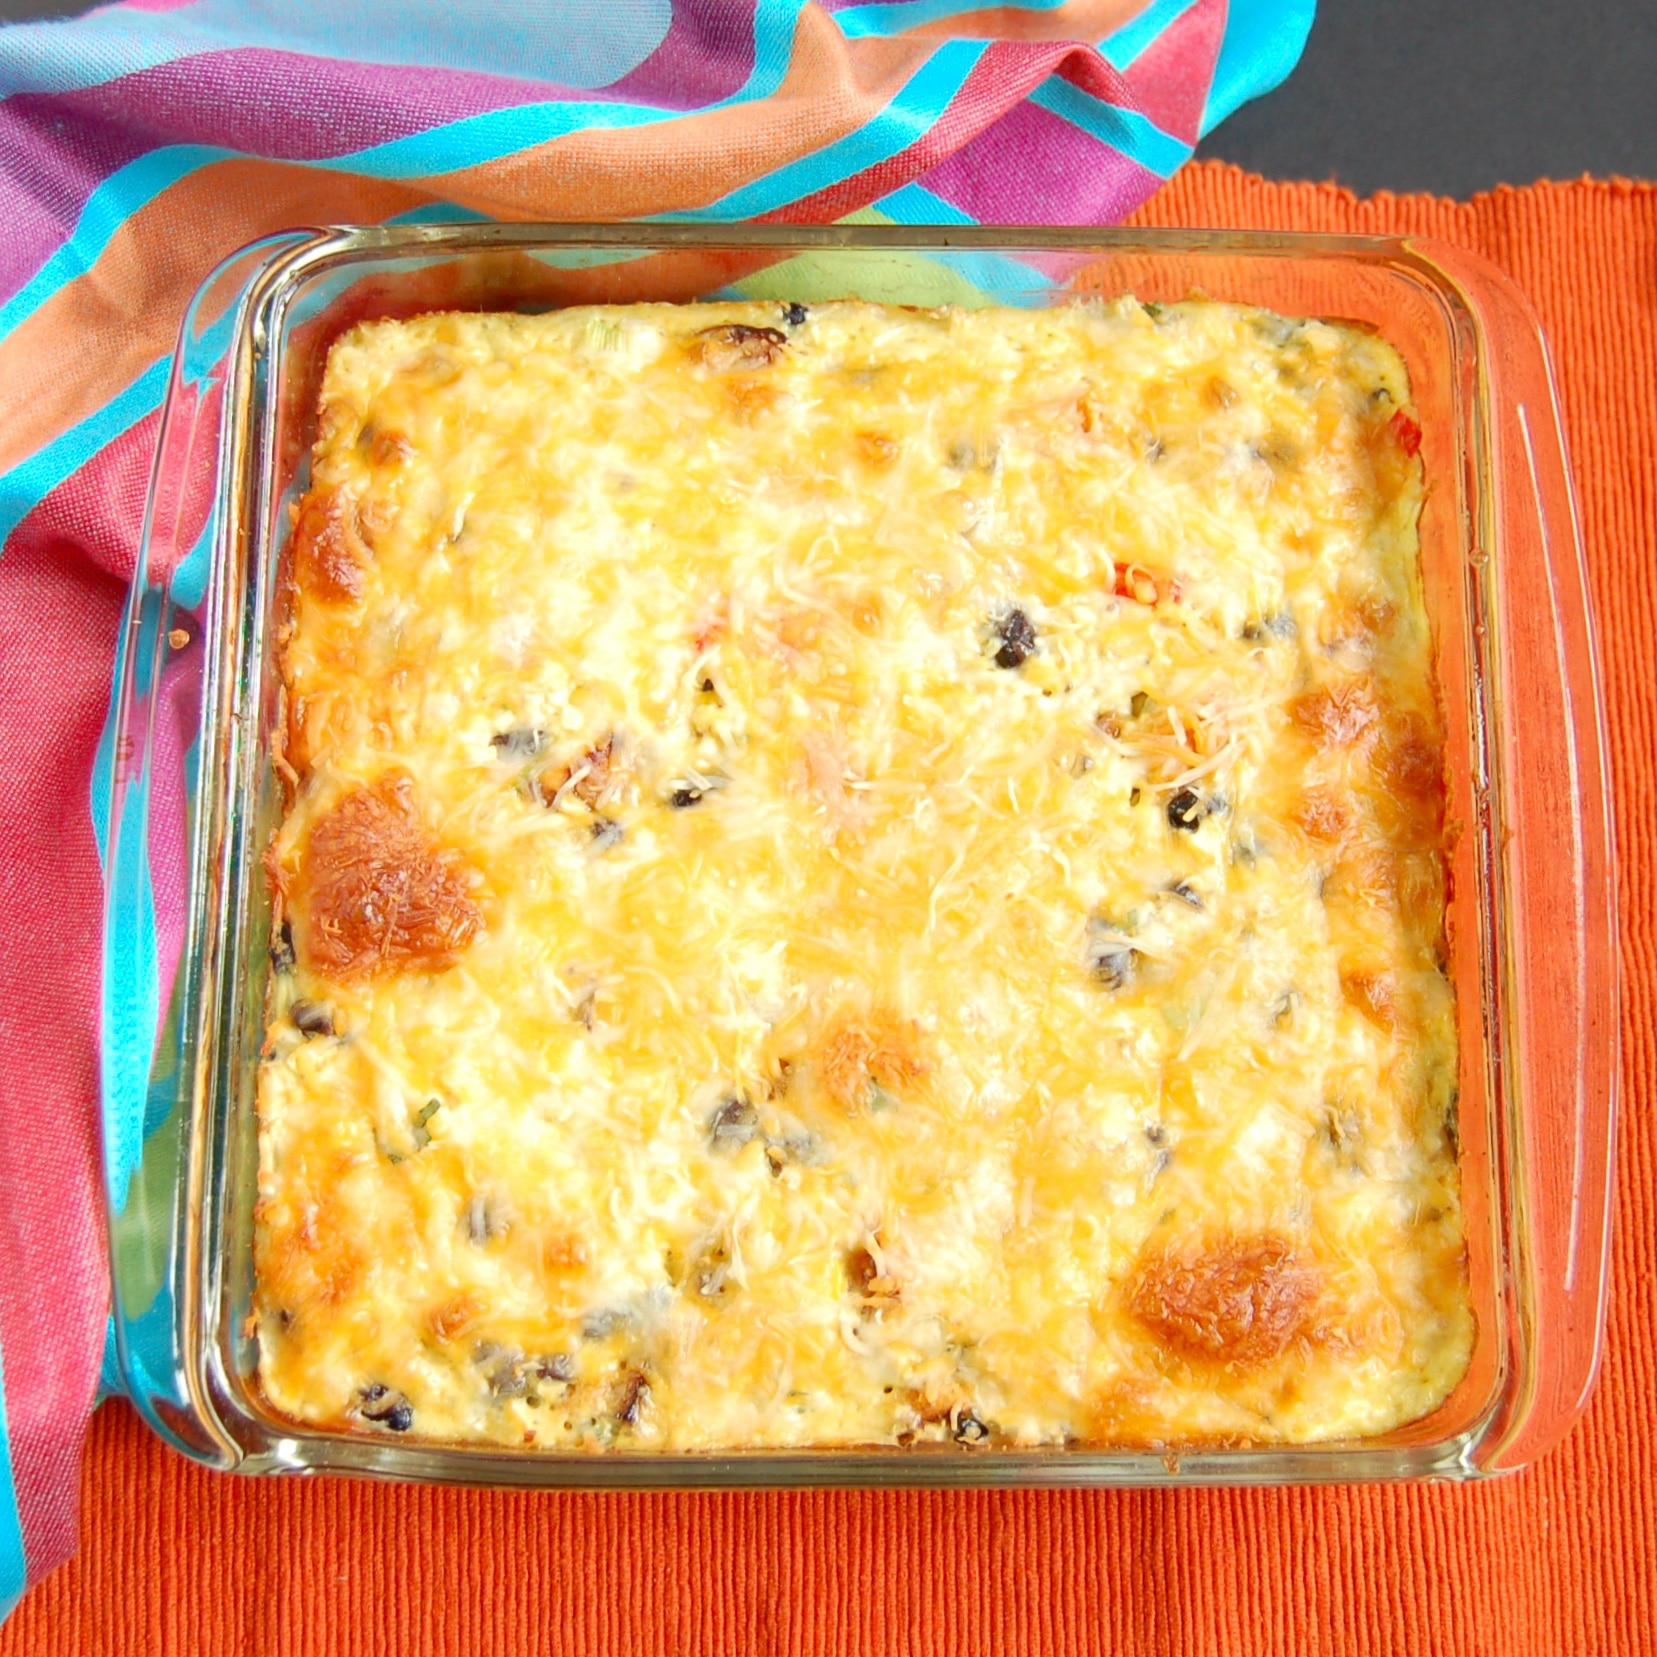 Feed your hungry family in an hour with this one-dish Southwestern Cauliflower Rice Casserole packed with veggies, protein, and flavor! Get the gluten-free, grain-free, and vegetarian recipe @jlevinsonrd.